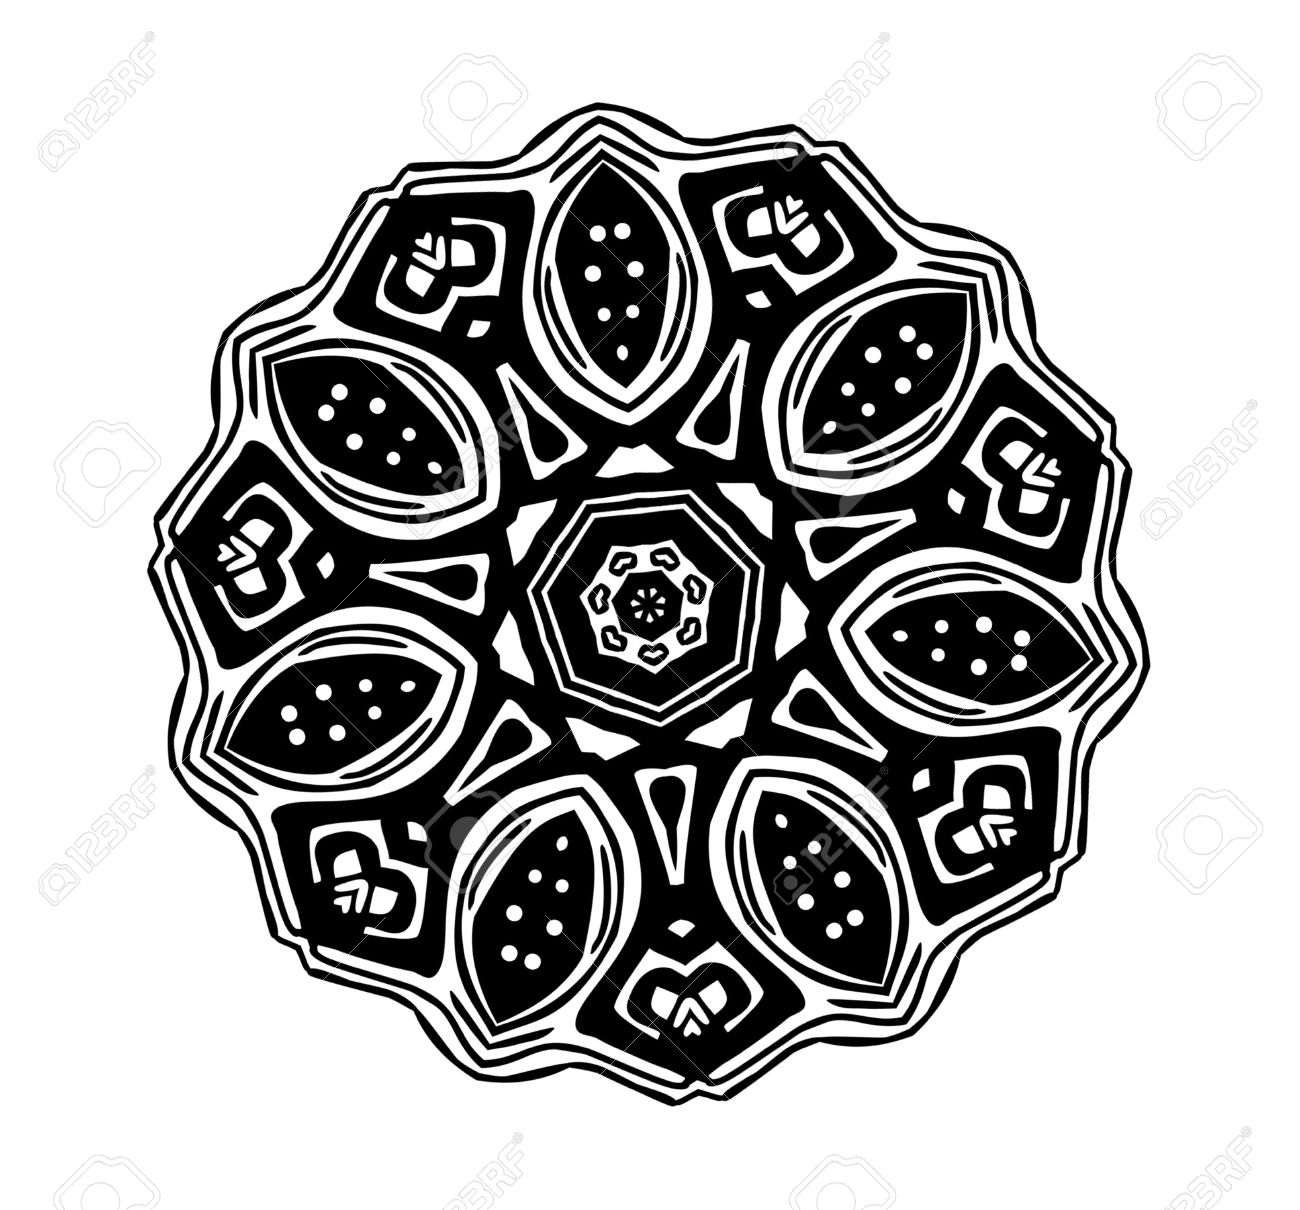 BLACK ROSE Clipart Illustration Of A Black And White Tribal Glyph.